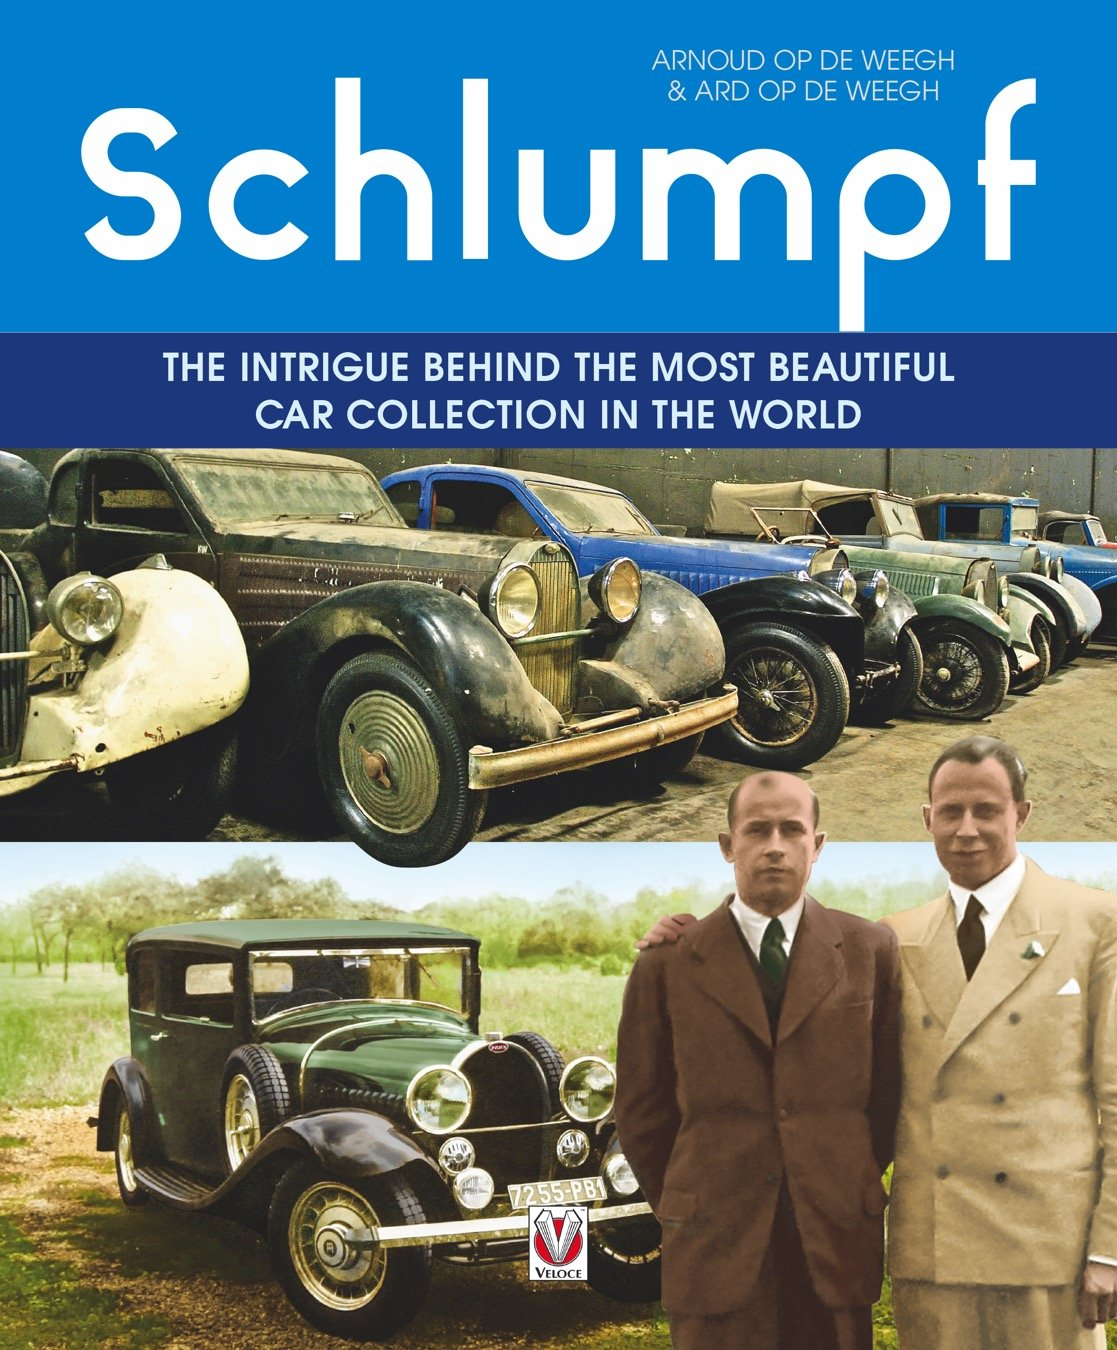 Schlumpf – The intrigue behind the most beautiful car collection in the world